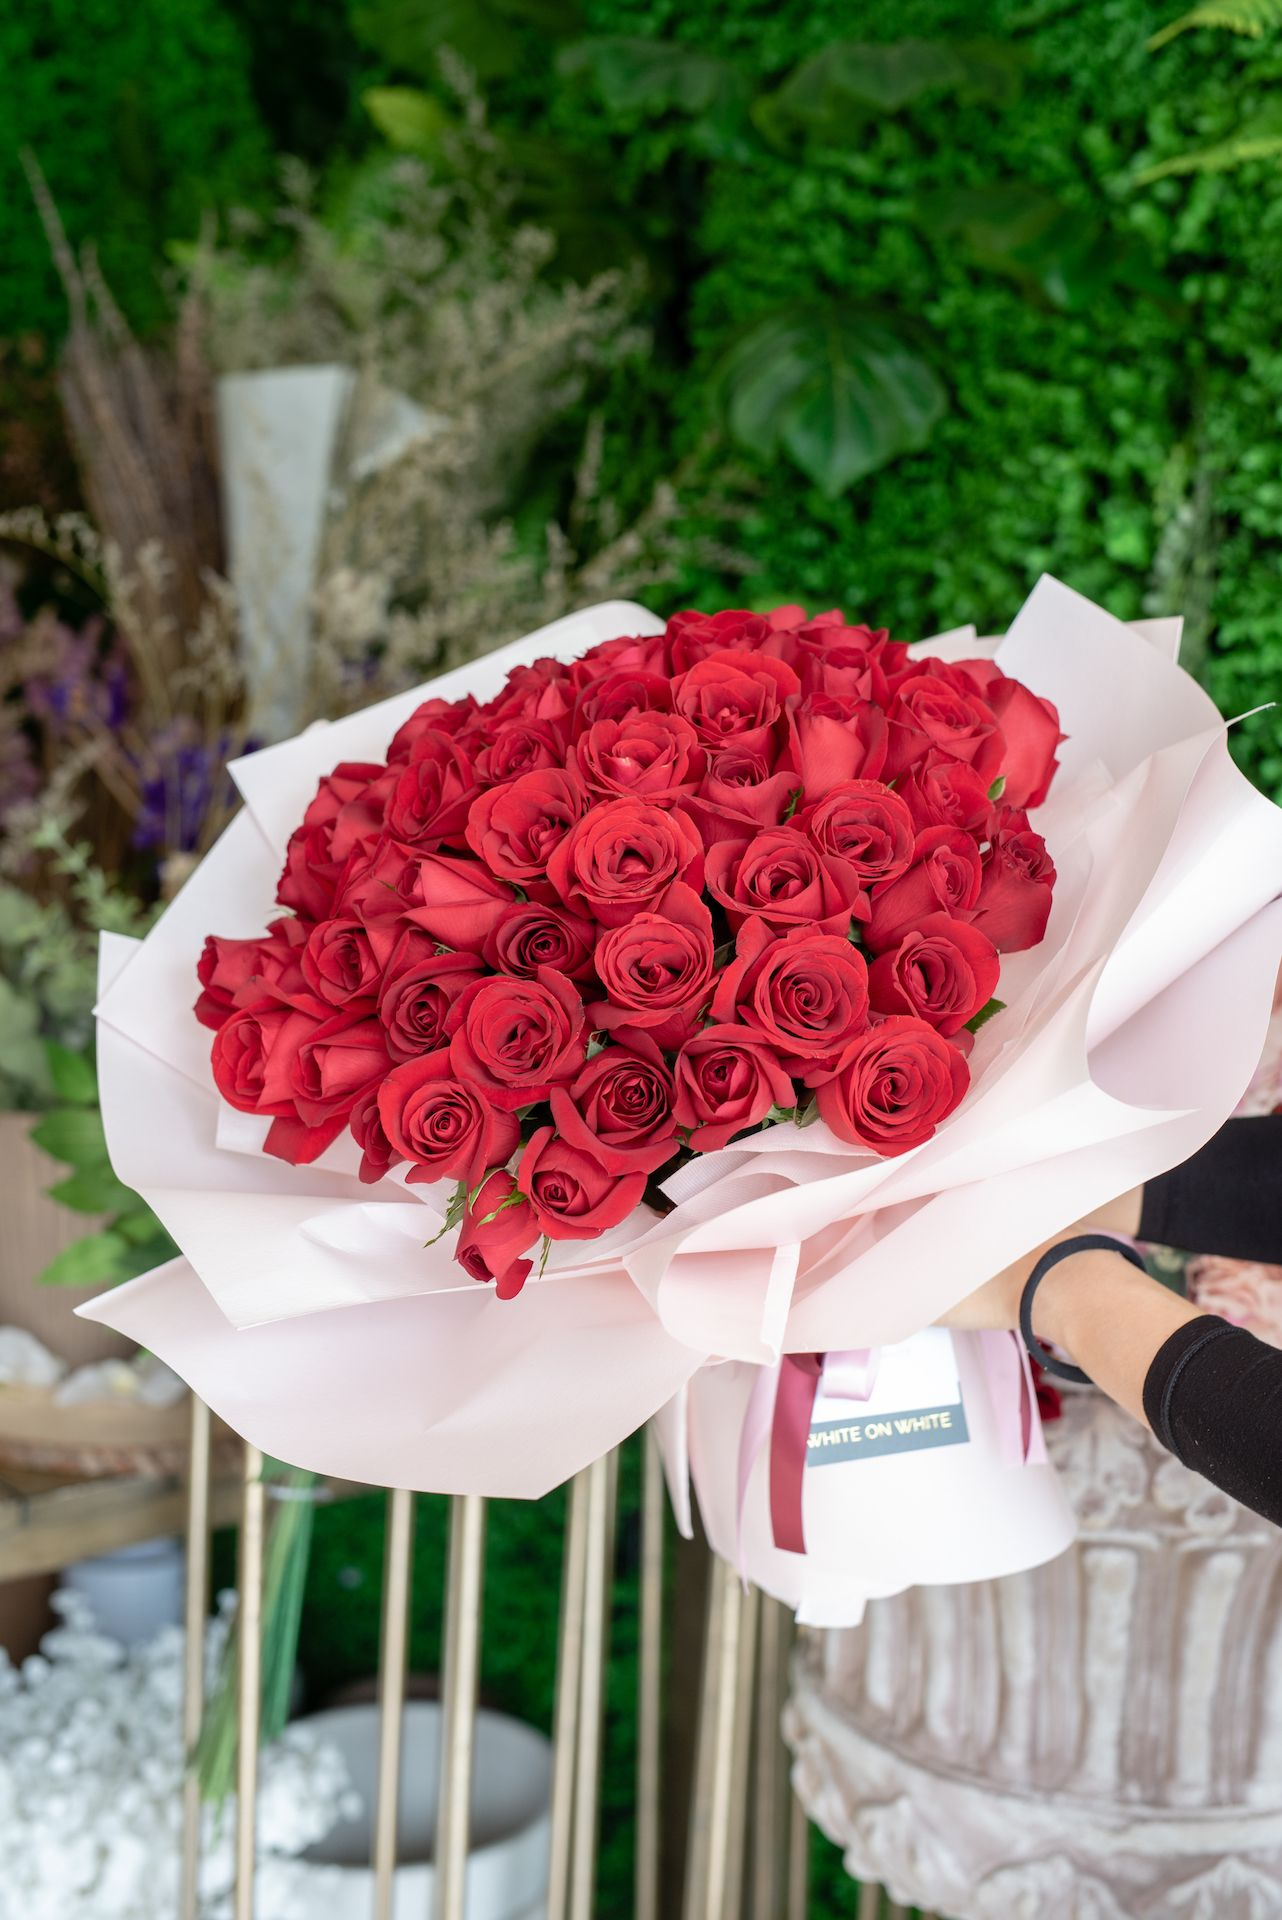 Red Roses Bouquet In 2020 Red Rose Bouquet Luxury Flowers Rose Bouquet